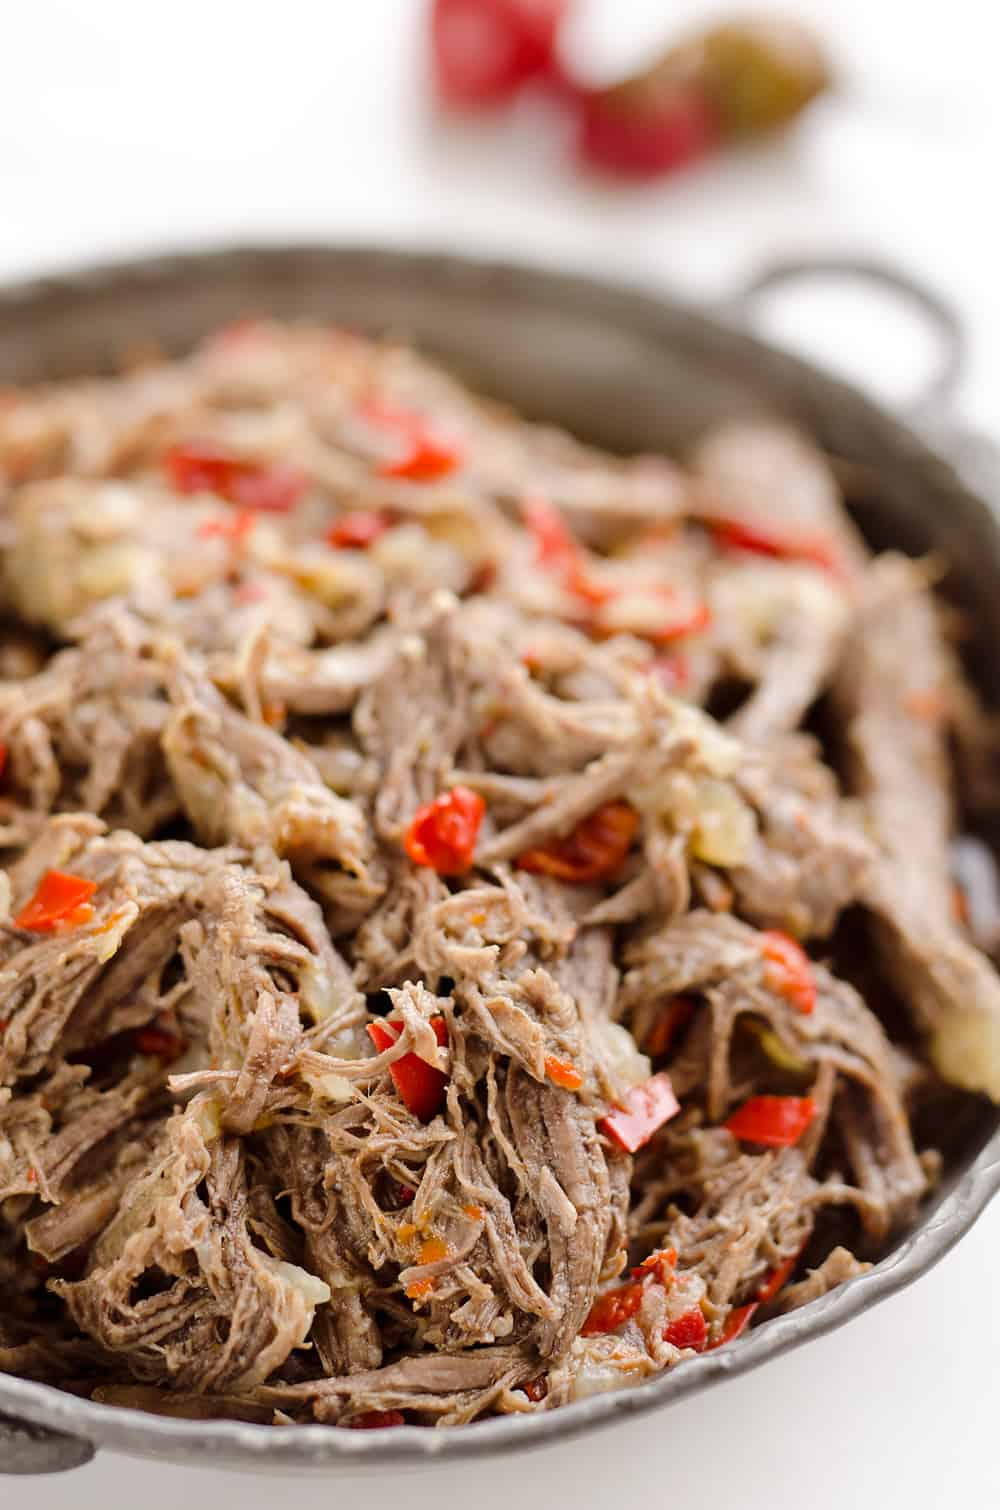 Pressure Cooker Shredded Italian Beef is an easy no fuss recipe made with simple ingredients! Serve this beef along with your favorite veggies for a healthy low-carb dinner idea or pile it high on fresh buns for a delicious sandwich!